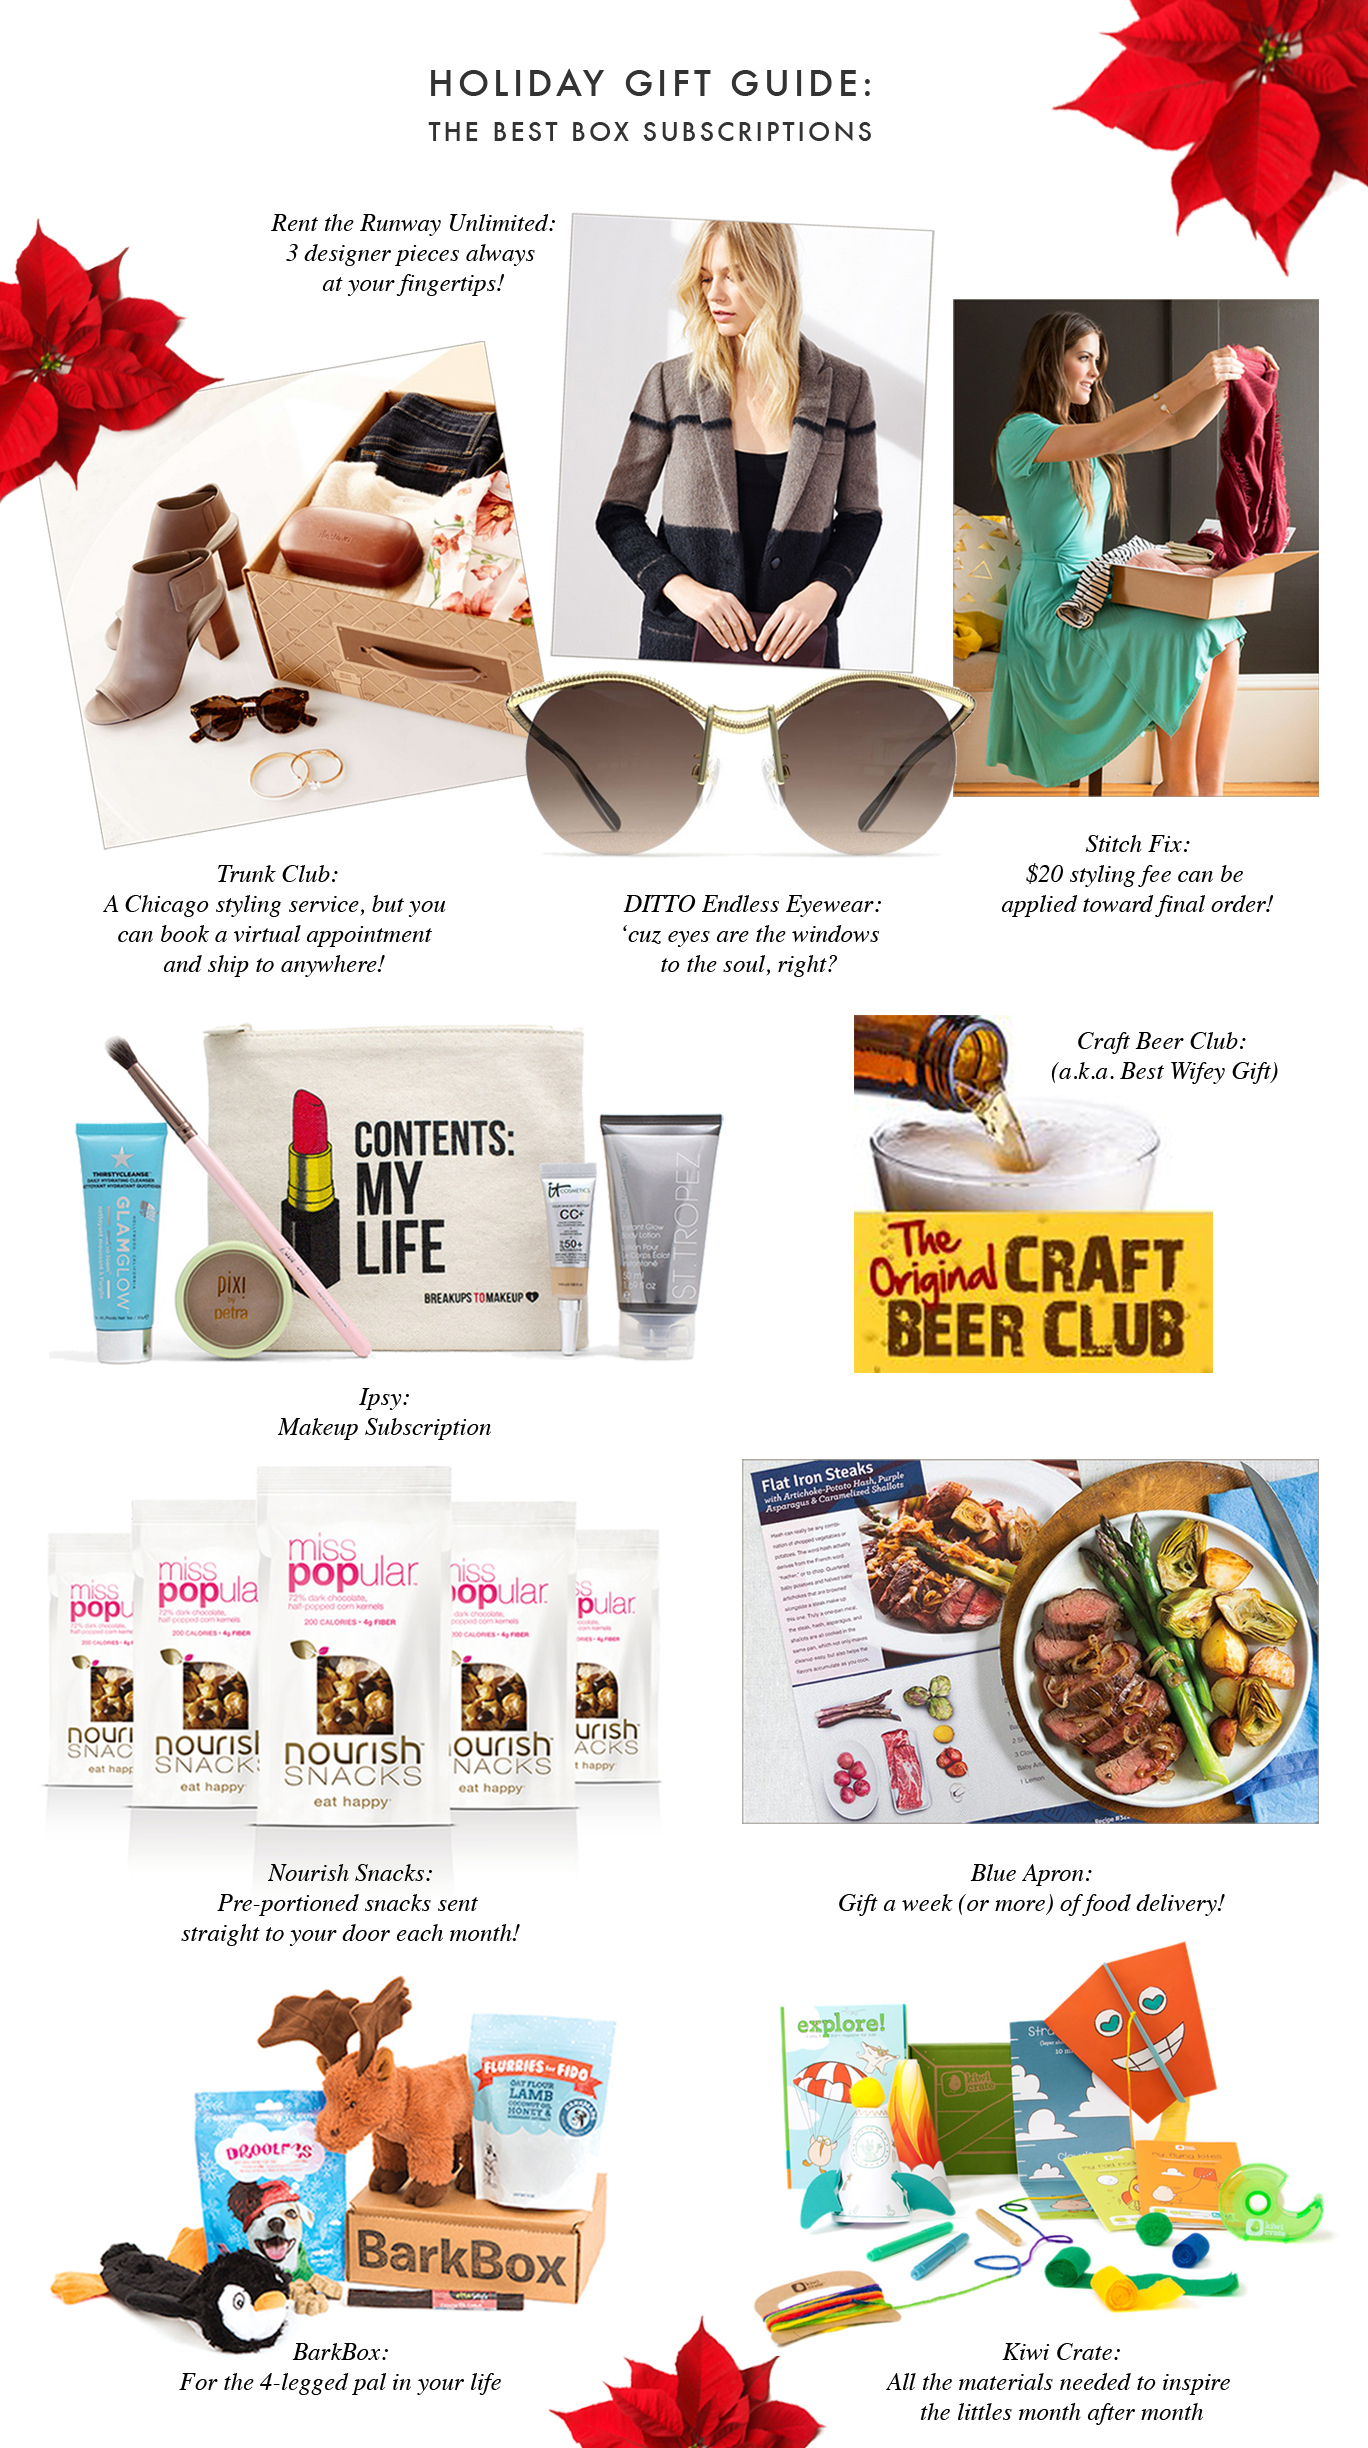 Holiday Gift Guide Box Subscriptions-121615